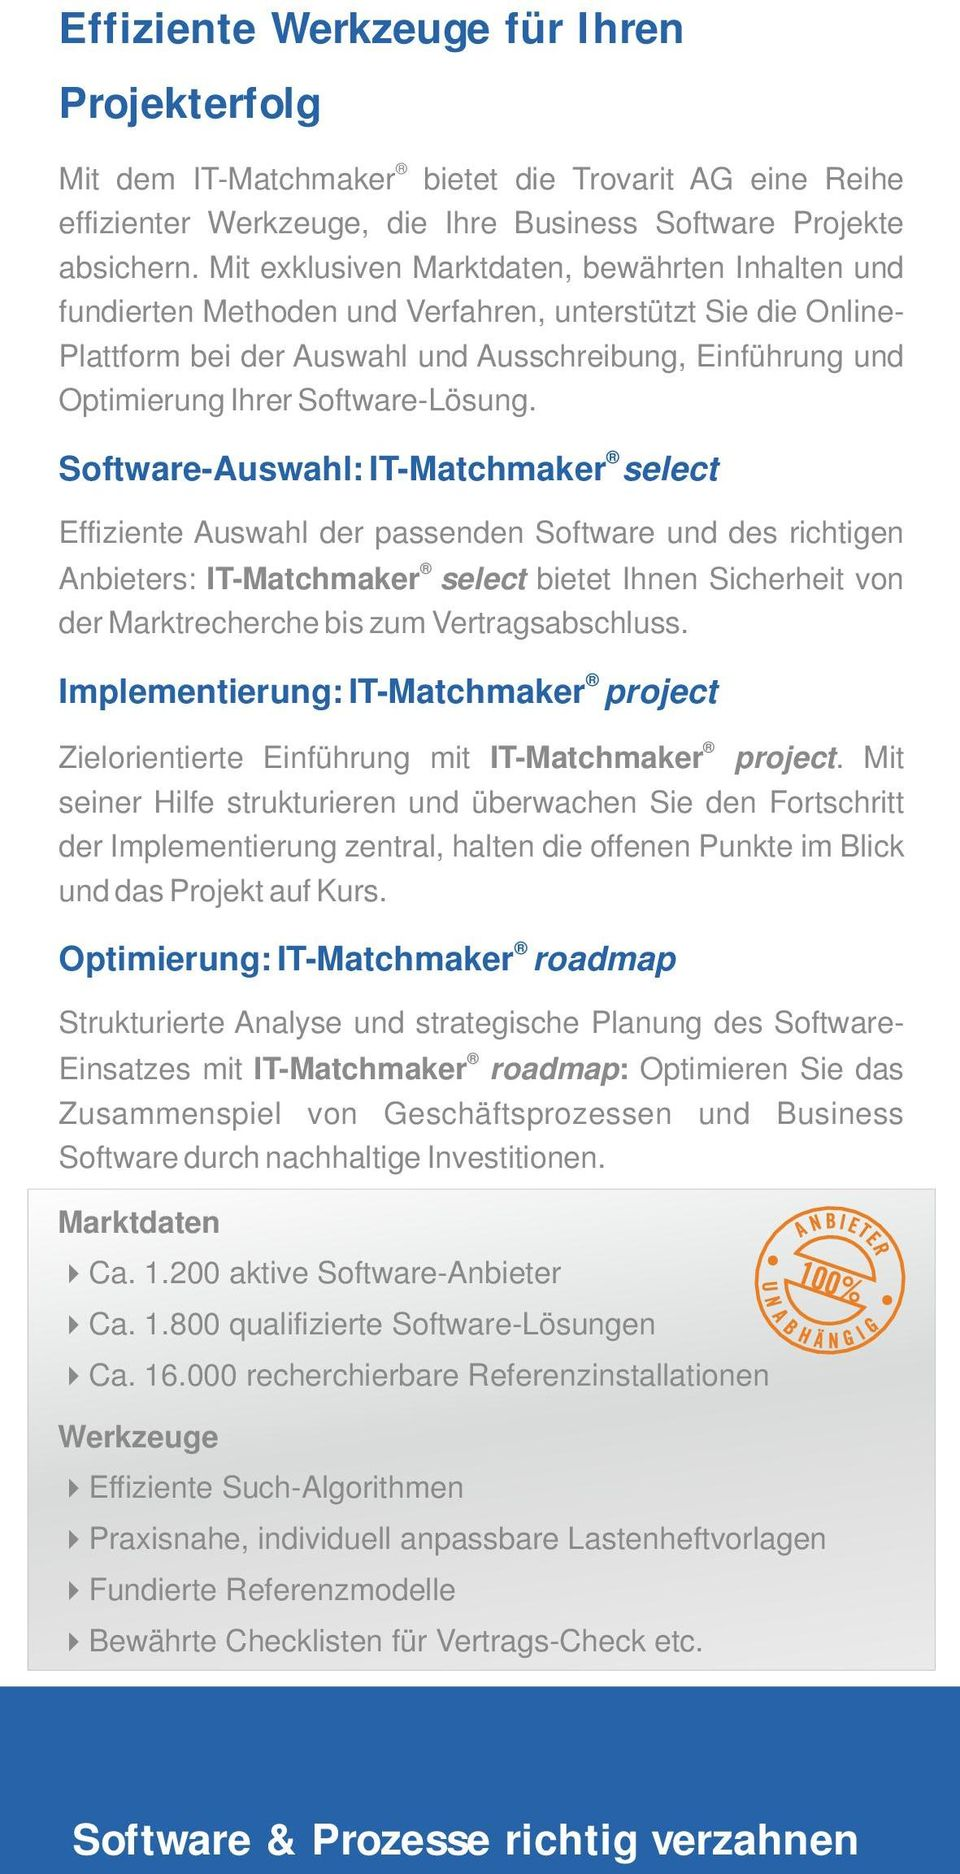 Software-Lösung.